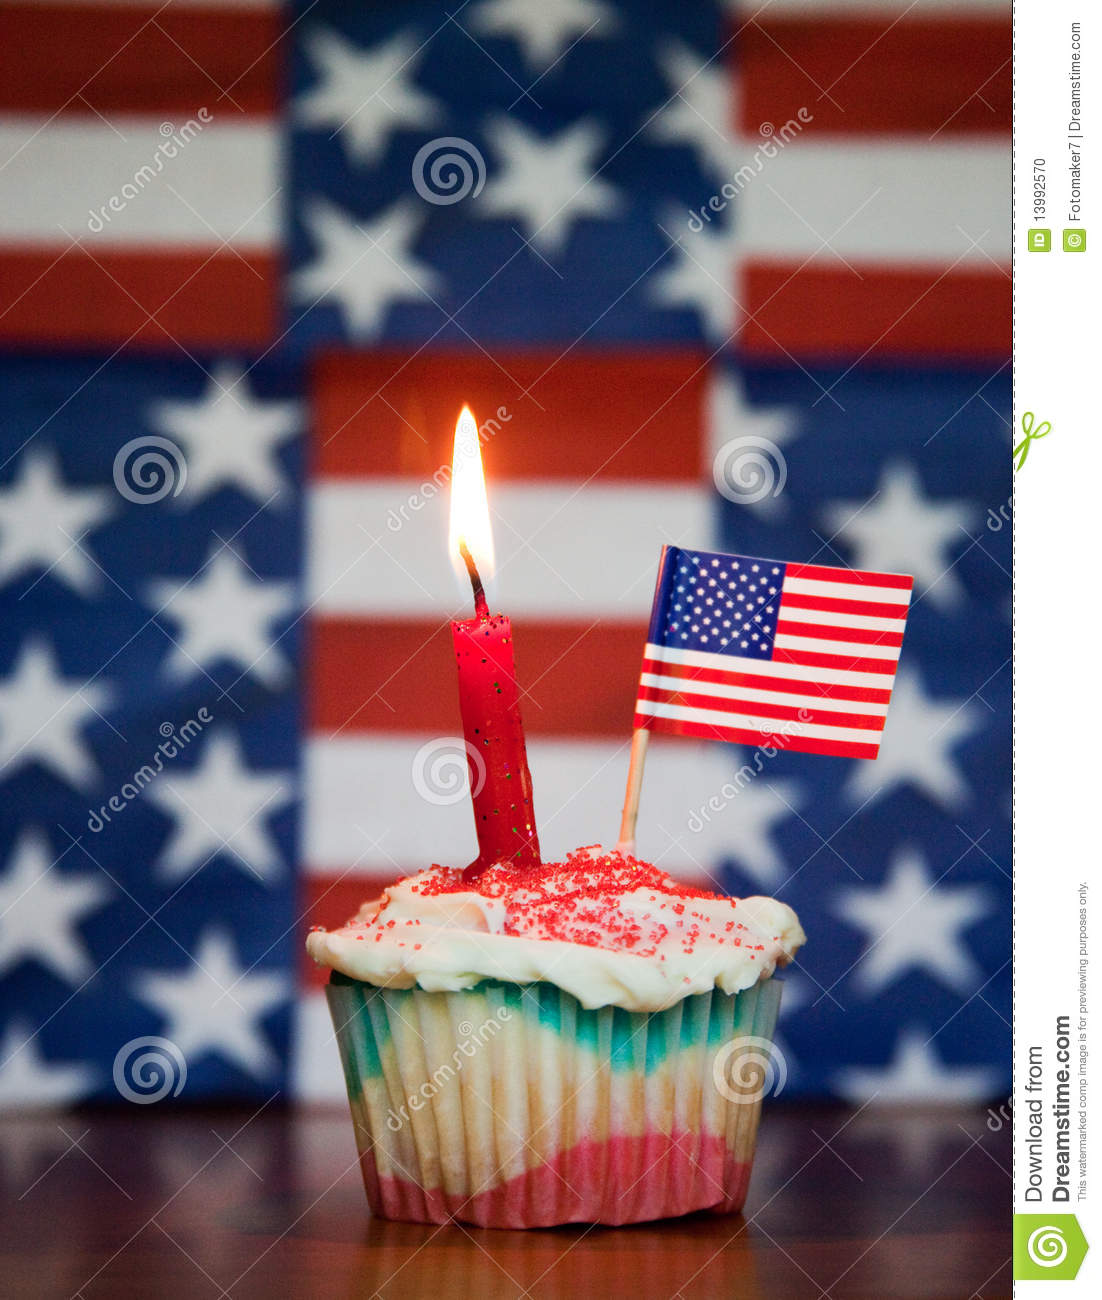 Happy Birthday America Vertical Stock Photo Image Of America